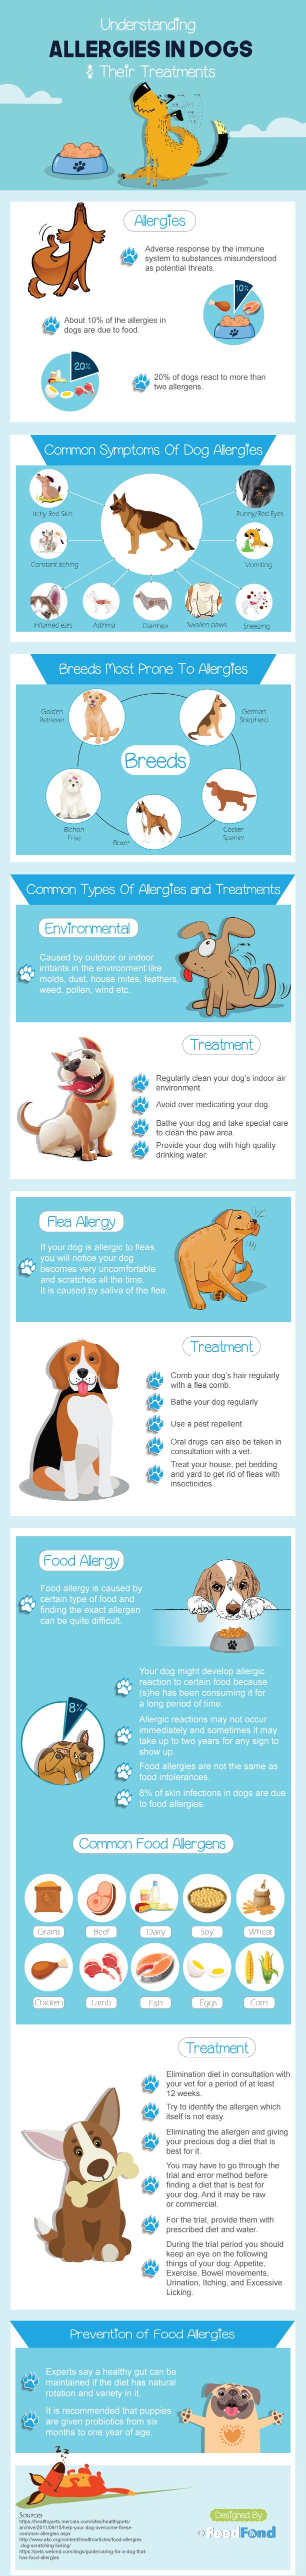 Dog-allergy-infographic | Allergies In Dogs: Triggers, Symptoms, And Treatments